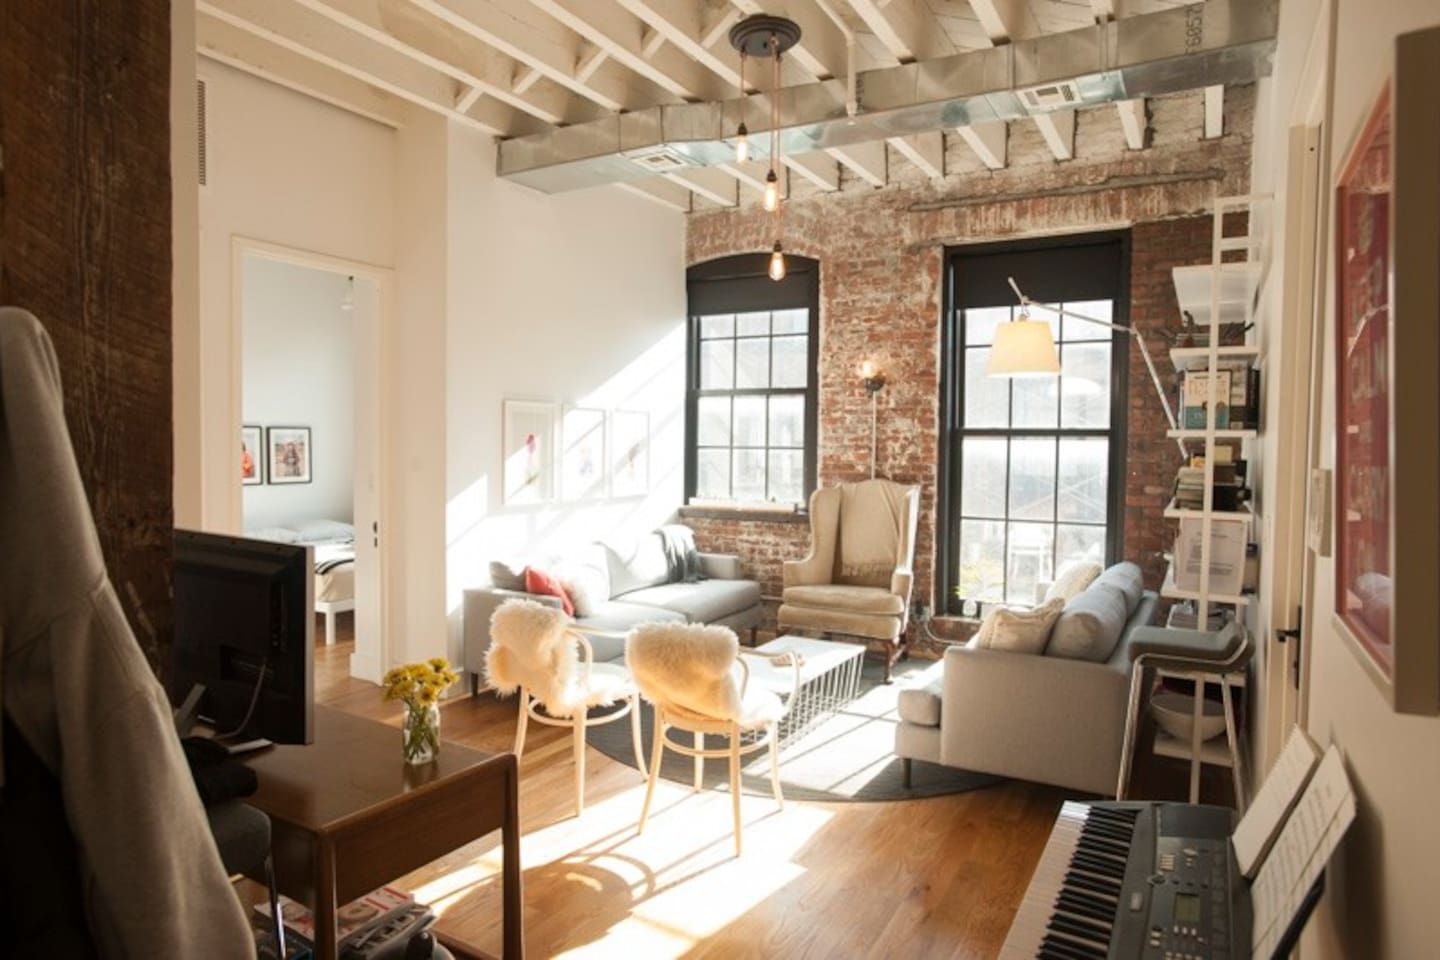 Stylish Loft Center Williamsburg - Apartments for Rent in